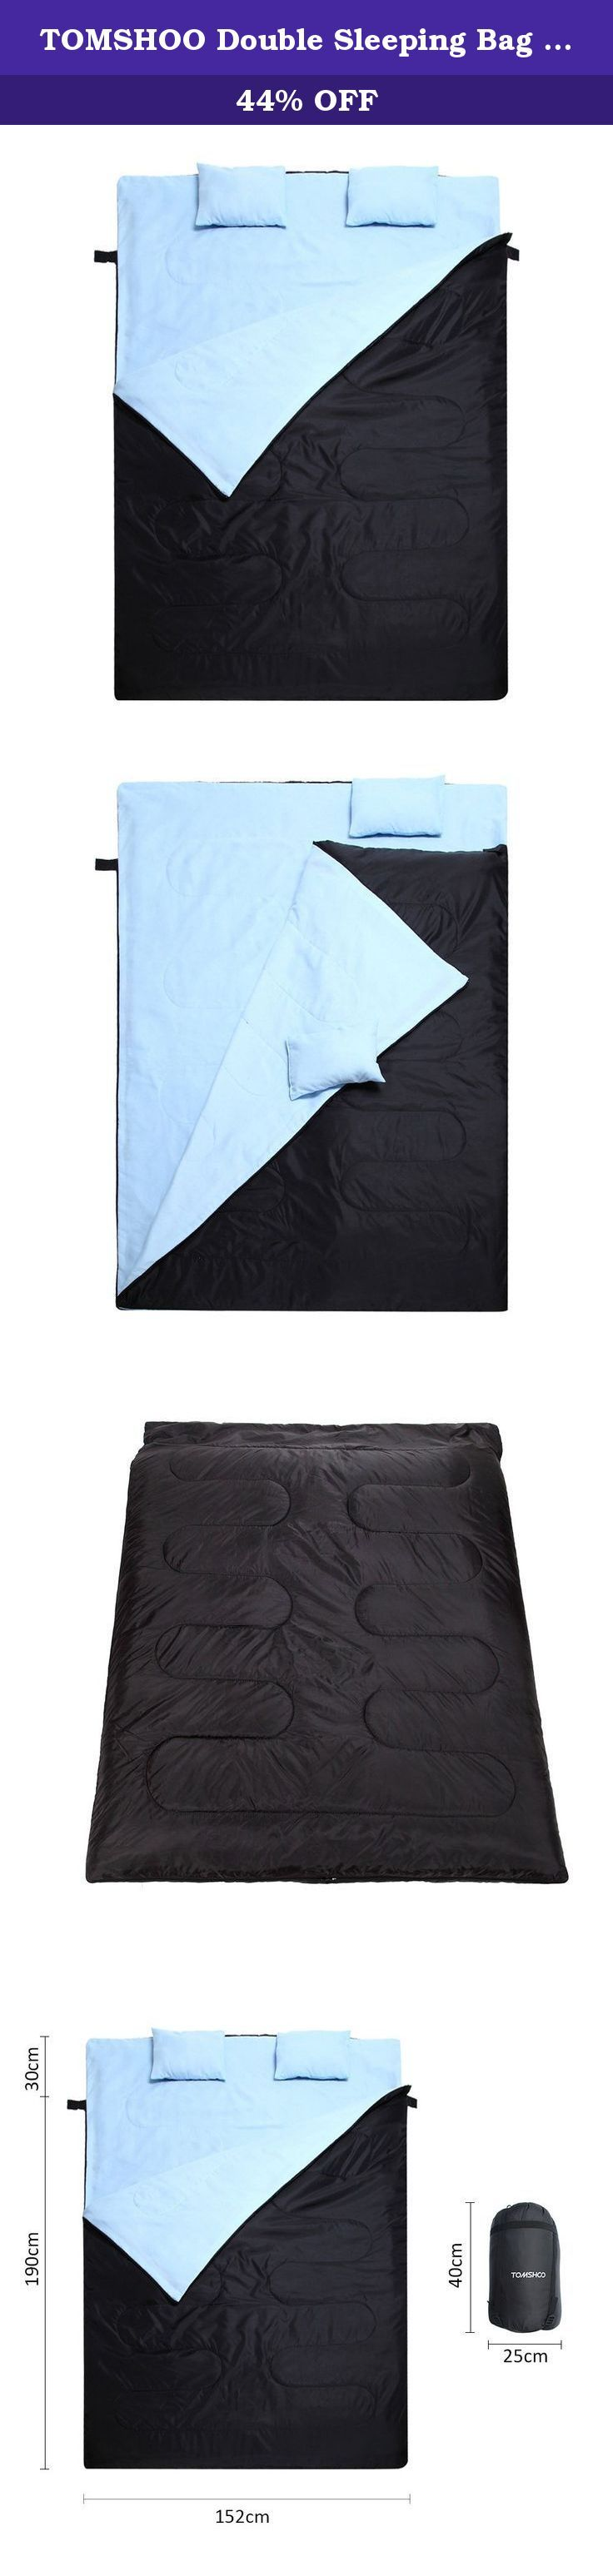 """TOMSHOO Double Sleeping Bag 2 Person 23°F~32°F with 2 Pillows and a Carrying Bag, Backpacking Sleeping Bag for Couple Outdoor Camping Hiking 86""""x 60"""". This double sleeping bag with compression stuff sack is the best companion for your travel. This envelope-style sleeping bag with 2 pillows is lightweight and can keep you warm and help you to have a good sleep at your camp site after a day of hiking and climbing. Features: 190T polyester shell and brushed fabric lining. Hollow fiber…"""